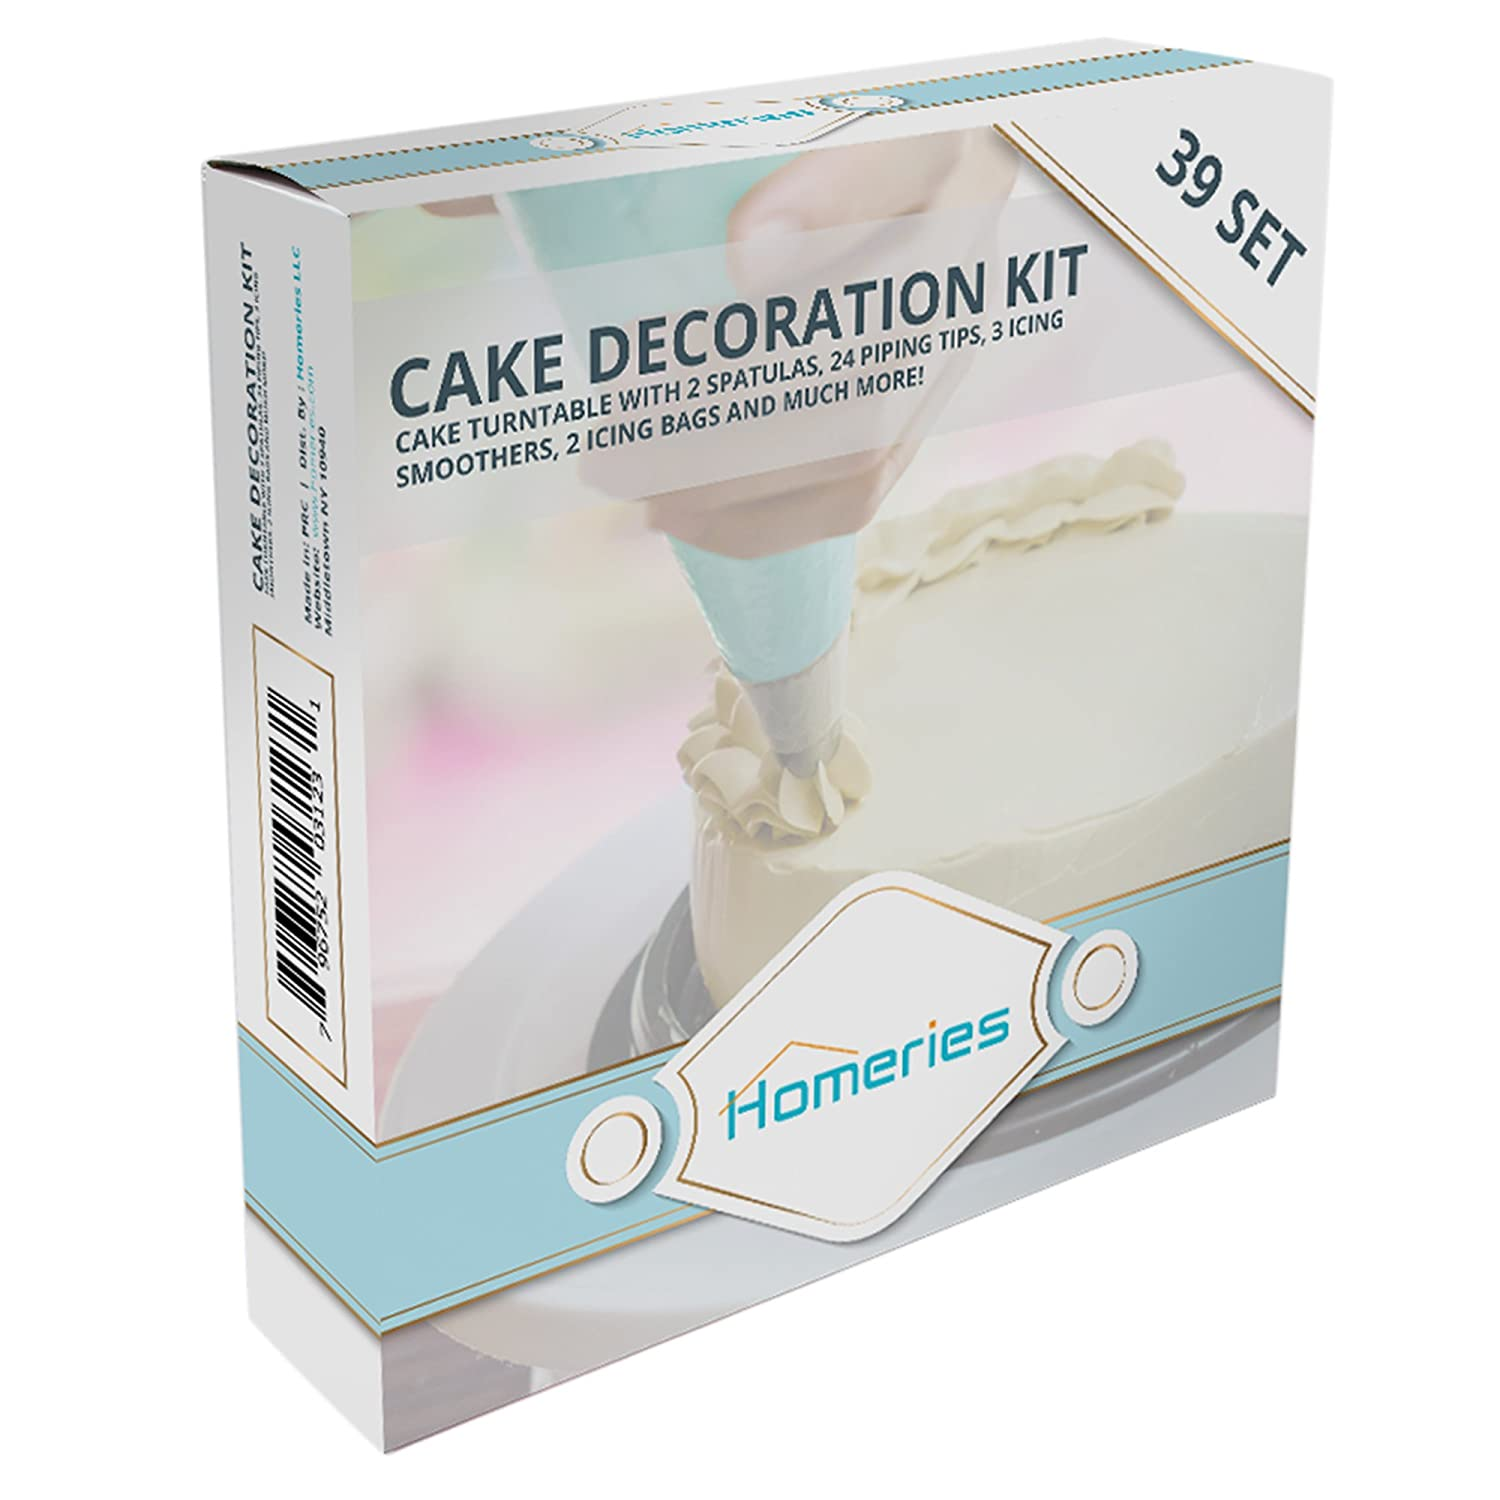 Best for Cake Decorating Training and Party Planning Display Homeries 6-Piece Cake Decorating Supplies Kit Turntable with 3 Decorating Comb//Icing Smoothers 2 Stainless Steel Icing Spatulas